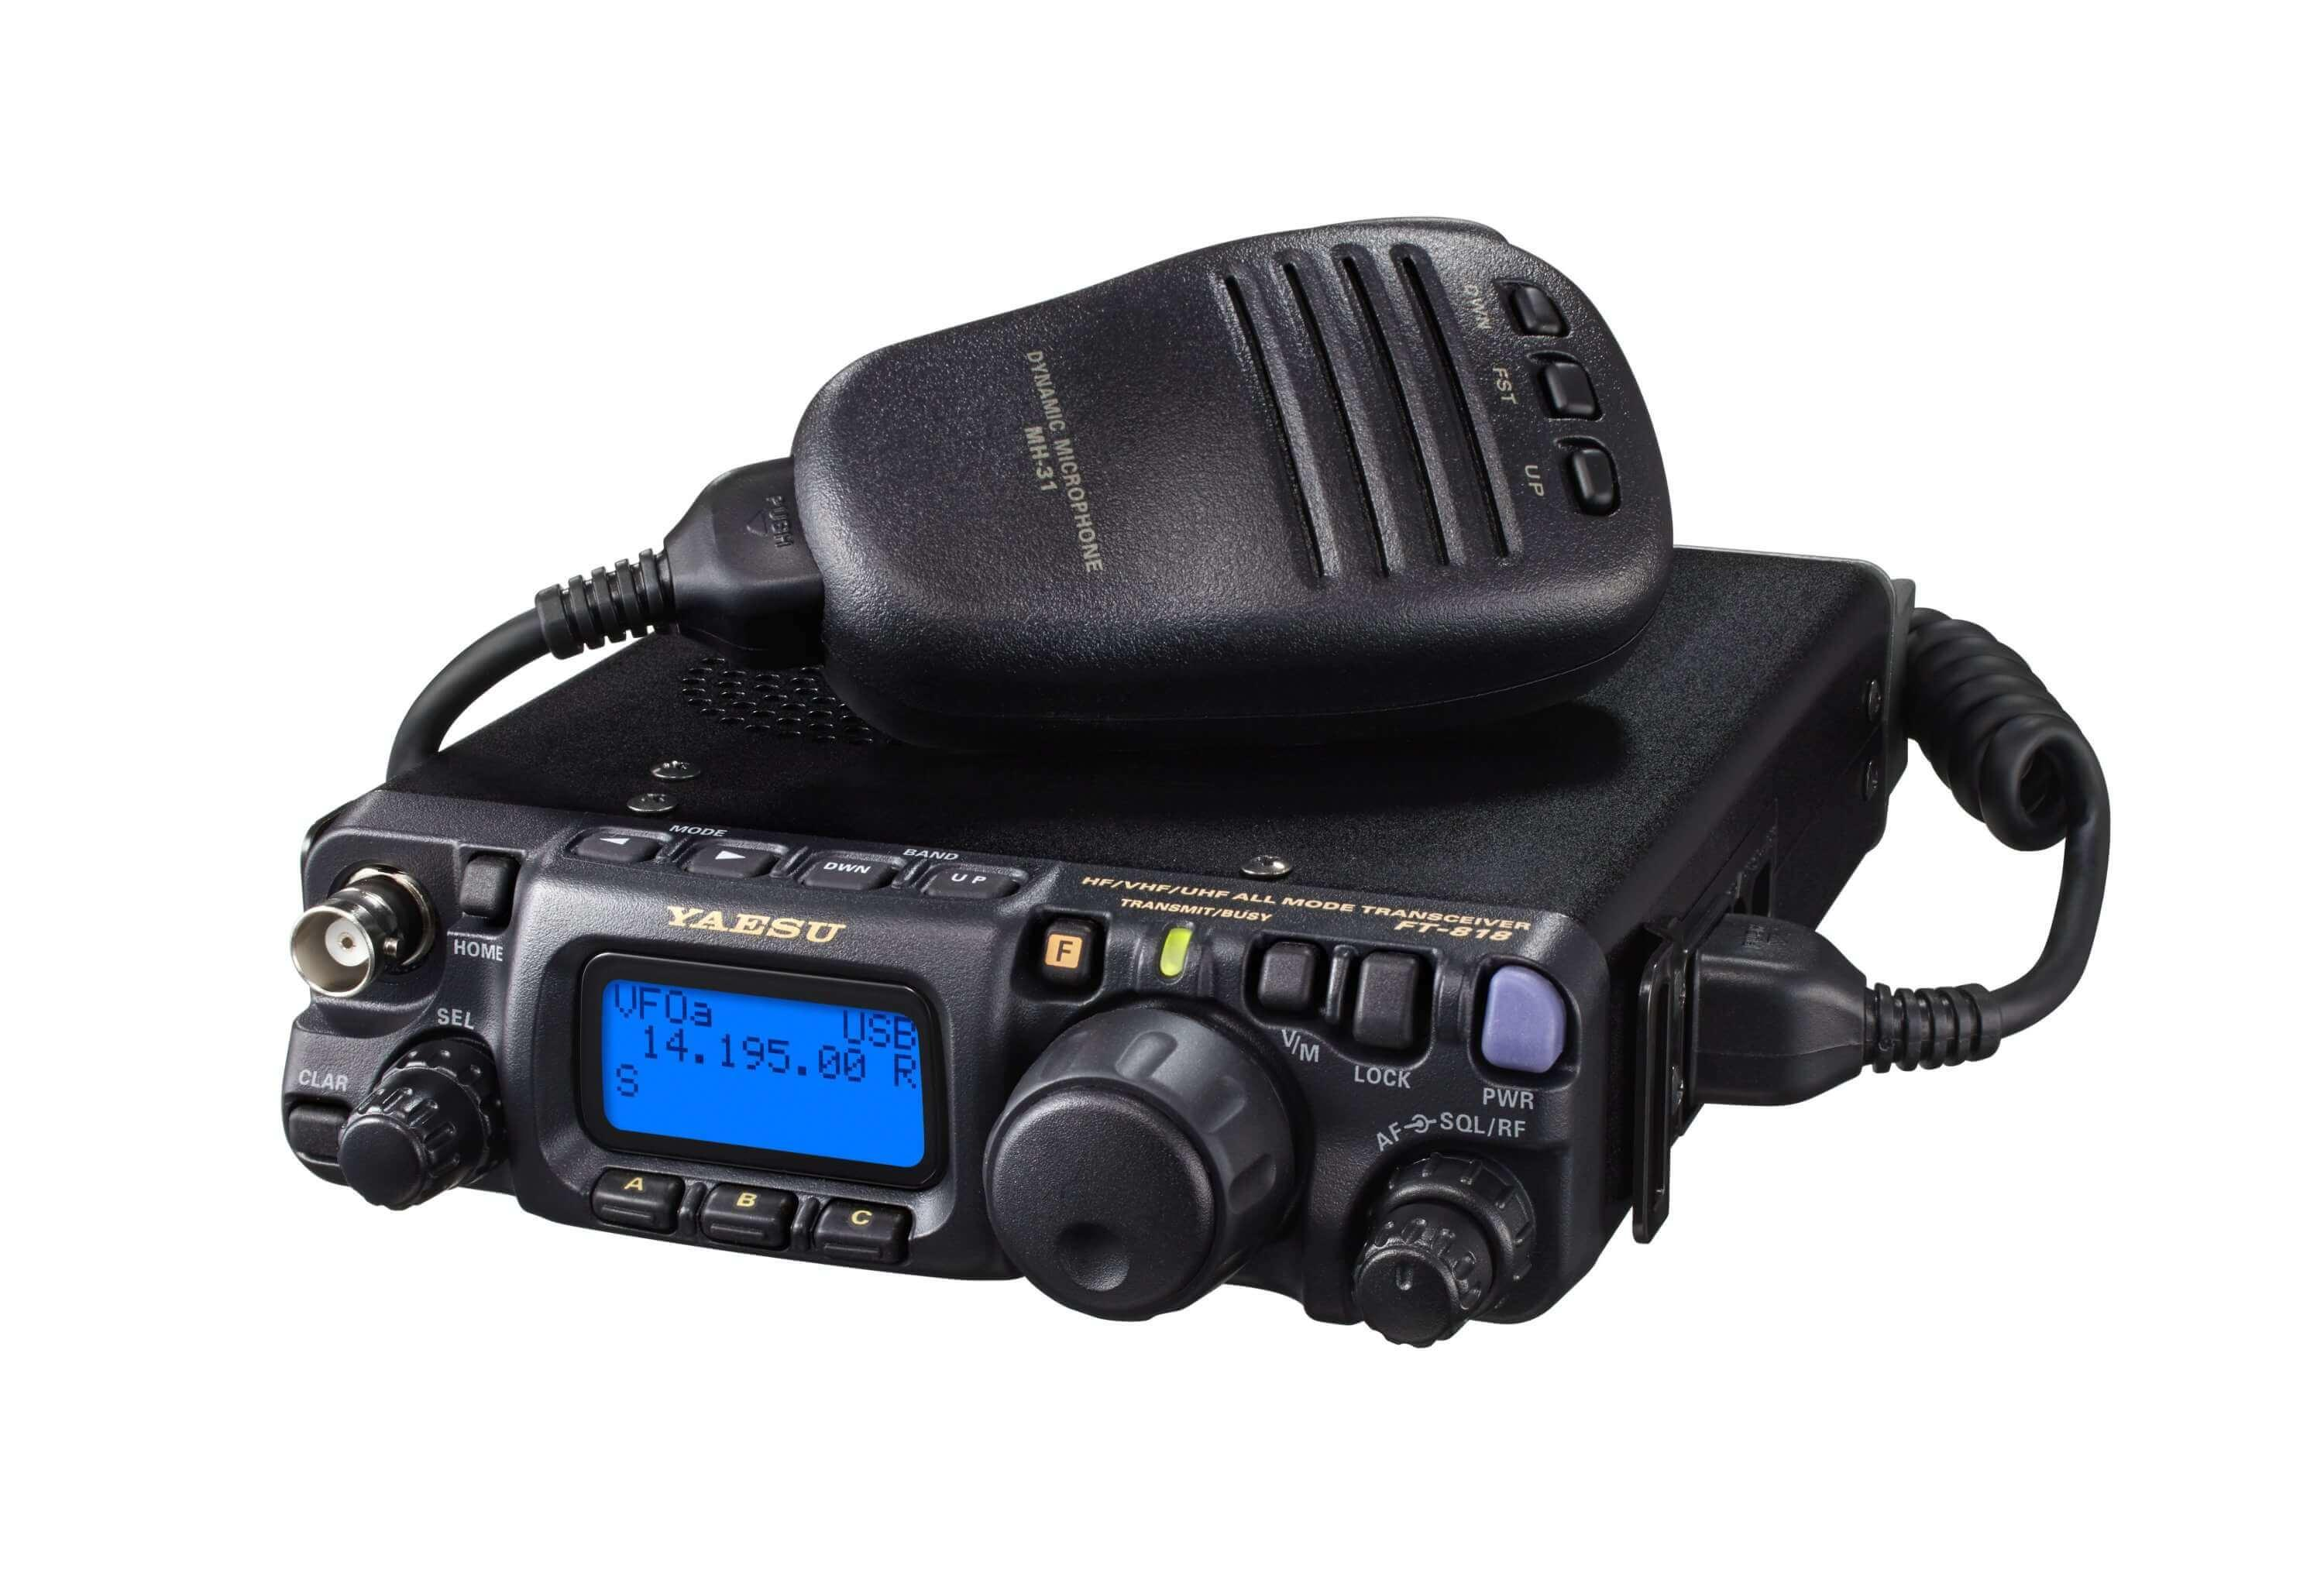 YAESU FT-818 6W HF/ VHF/ UHF All Mode Portable Transceiver